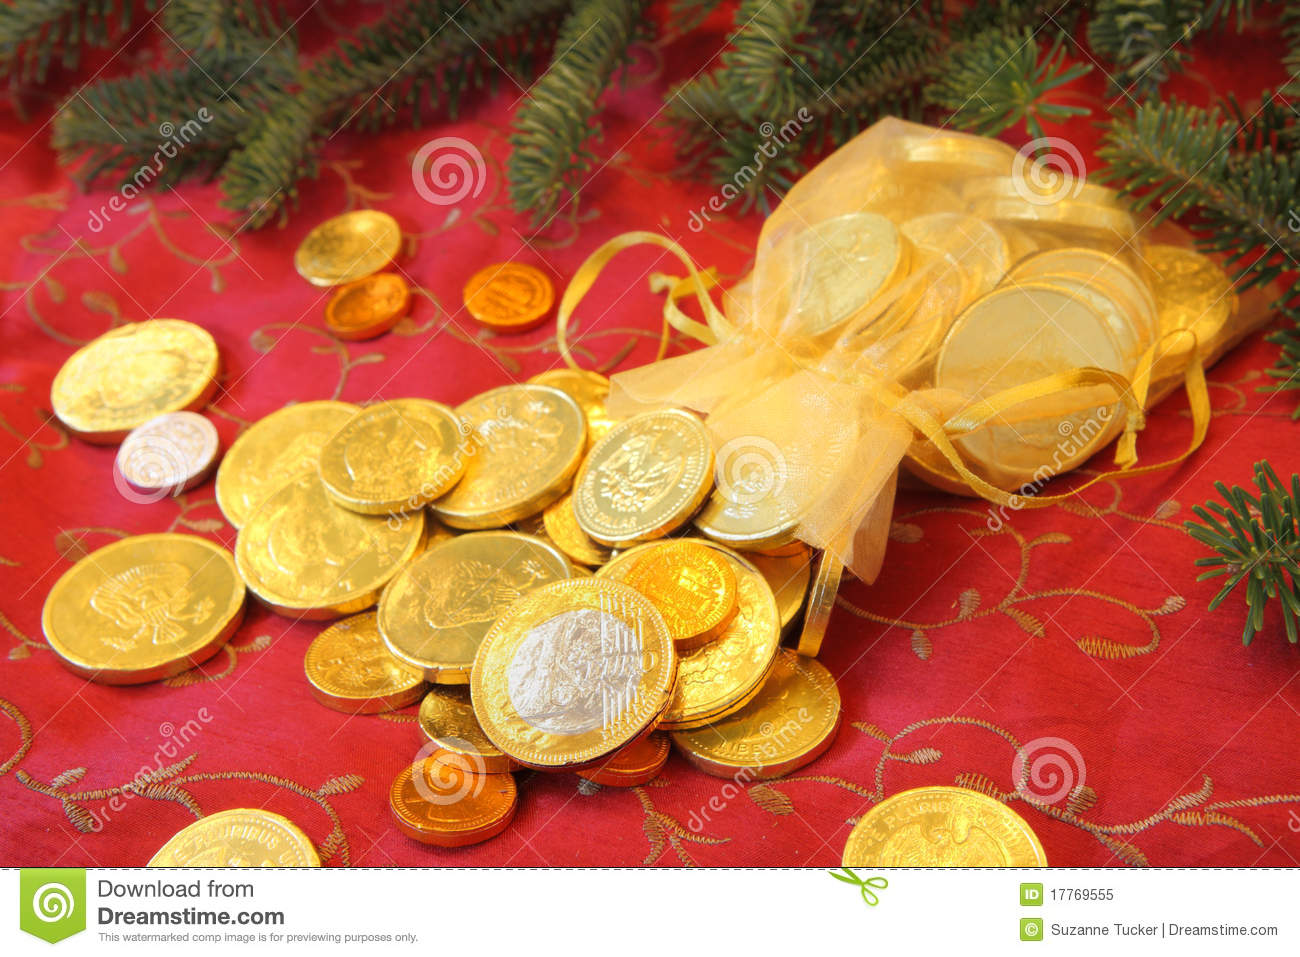 Gold Chocolate Coins For A Christmas Gift Royalty Free Stock Photo ...